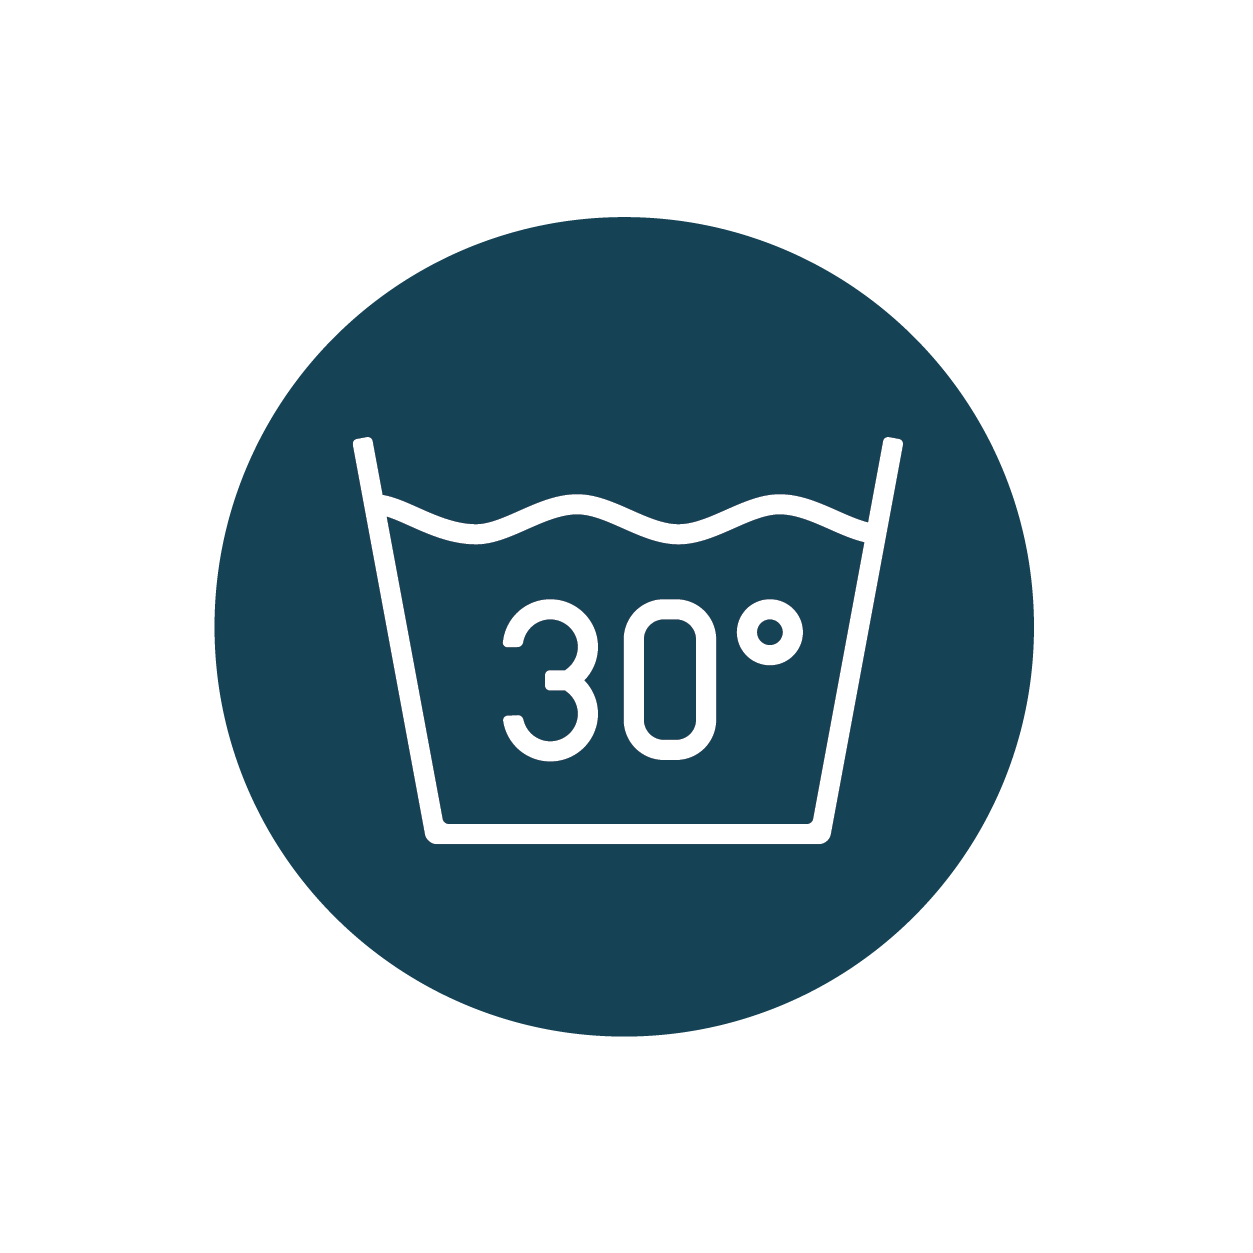 Wash clothes on 30° and on shorter cycles - Not only does this save energy, research suggests it can limit microfibre shedding as cooler water doesn't wear your clothes as much as hotter ones.